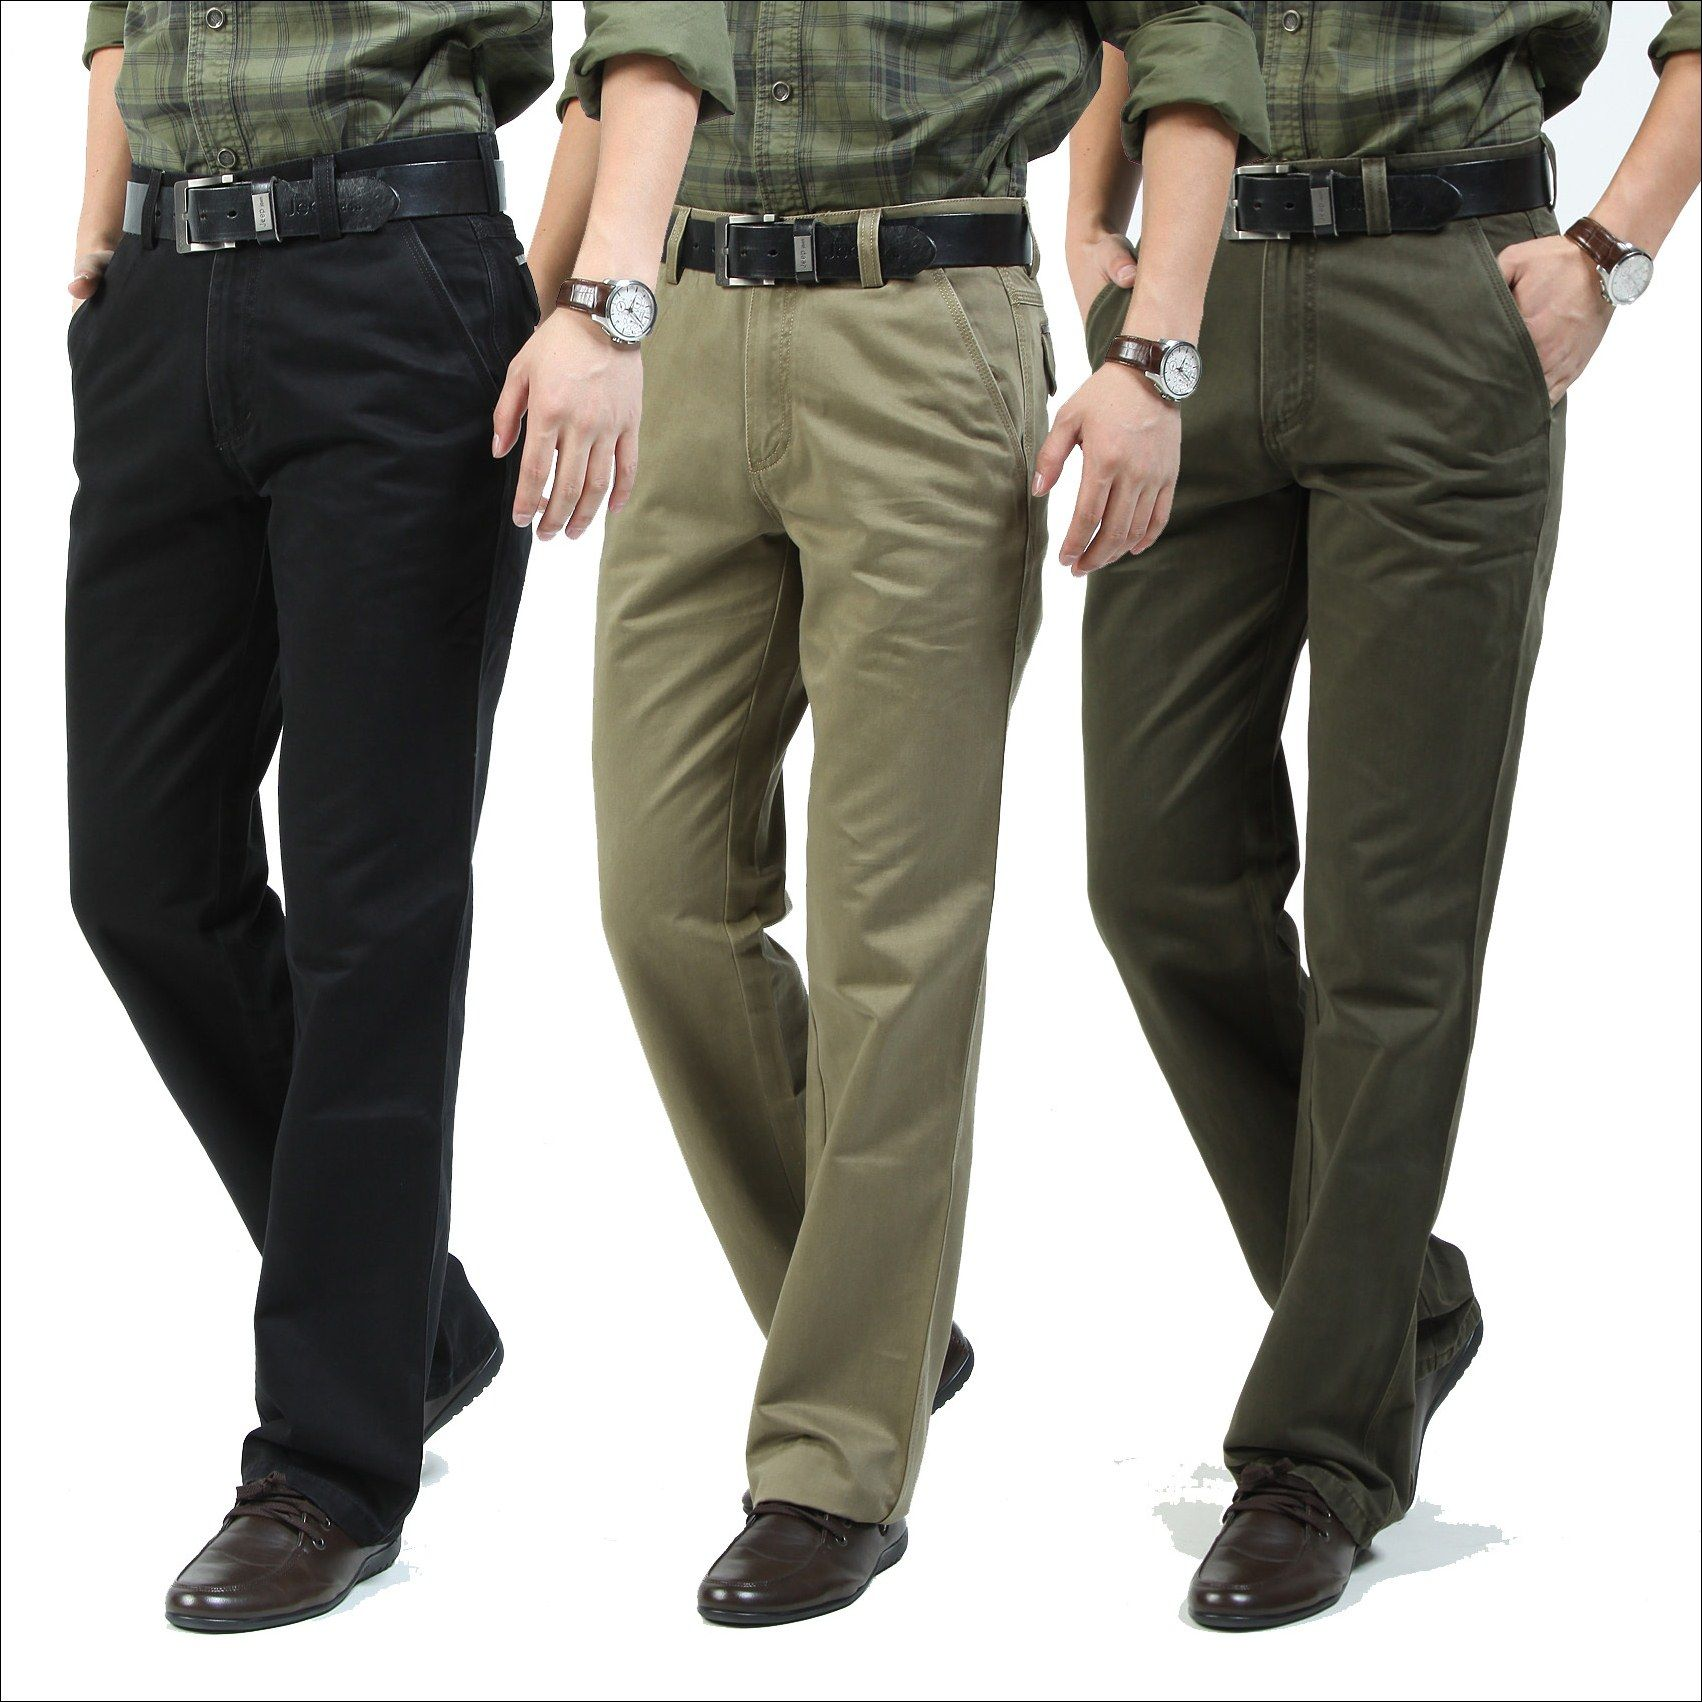 Casual dress pants for office use. In modern times, men's are very ...